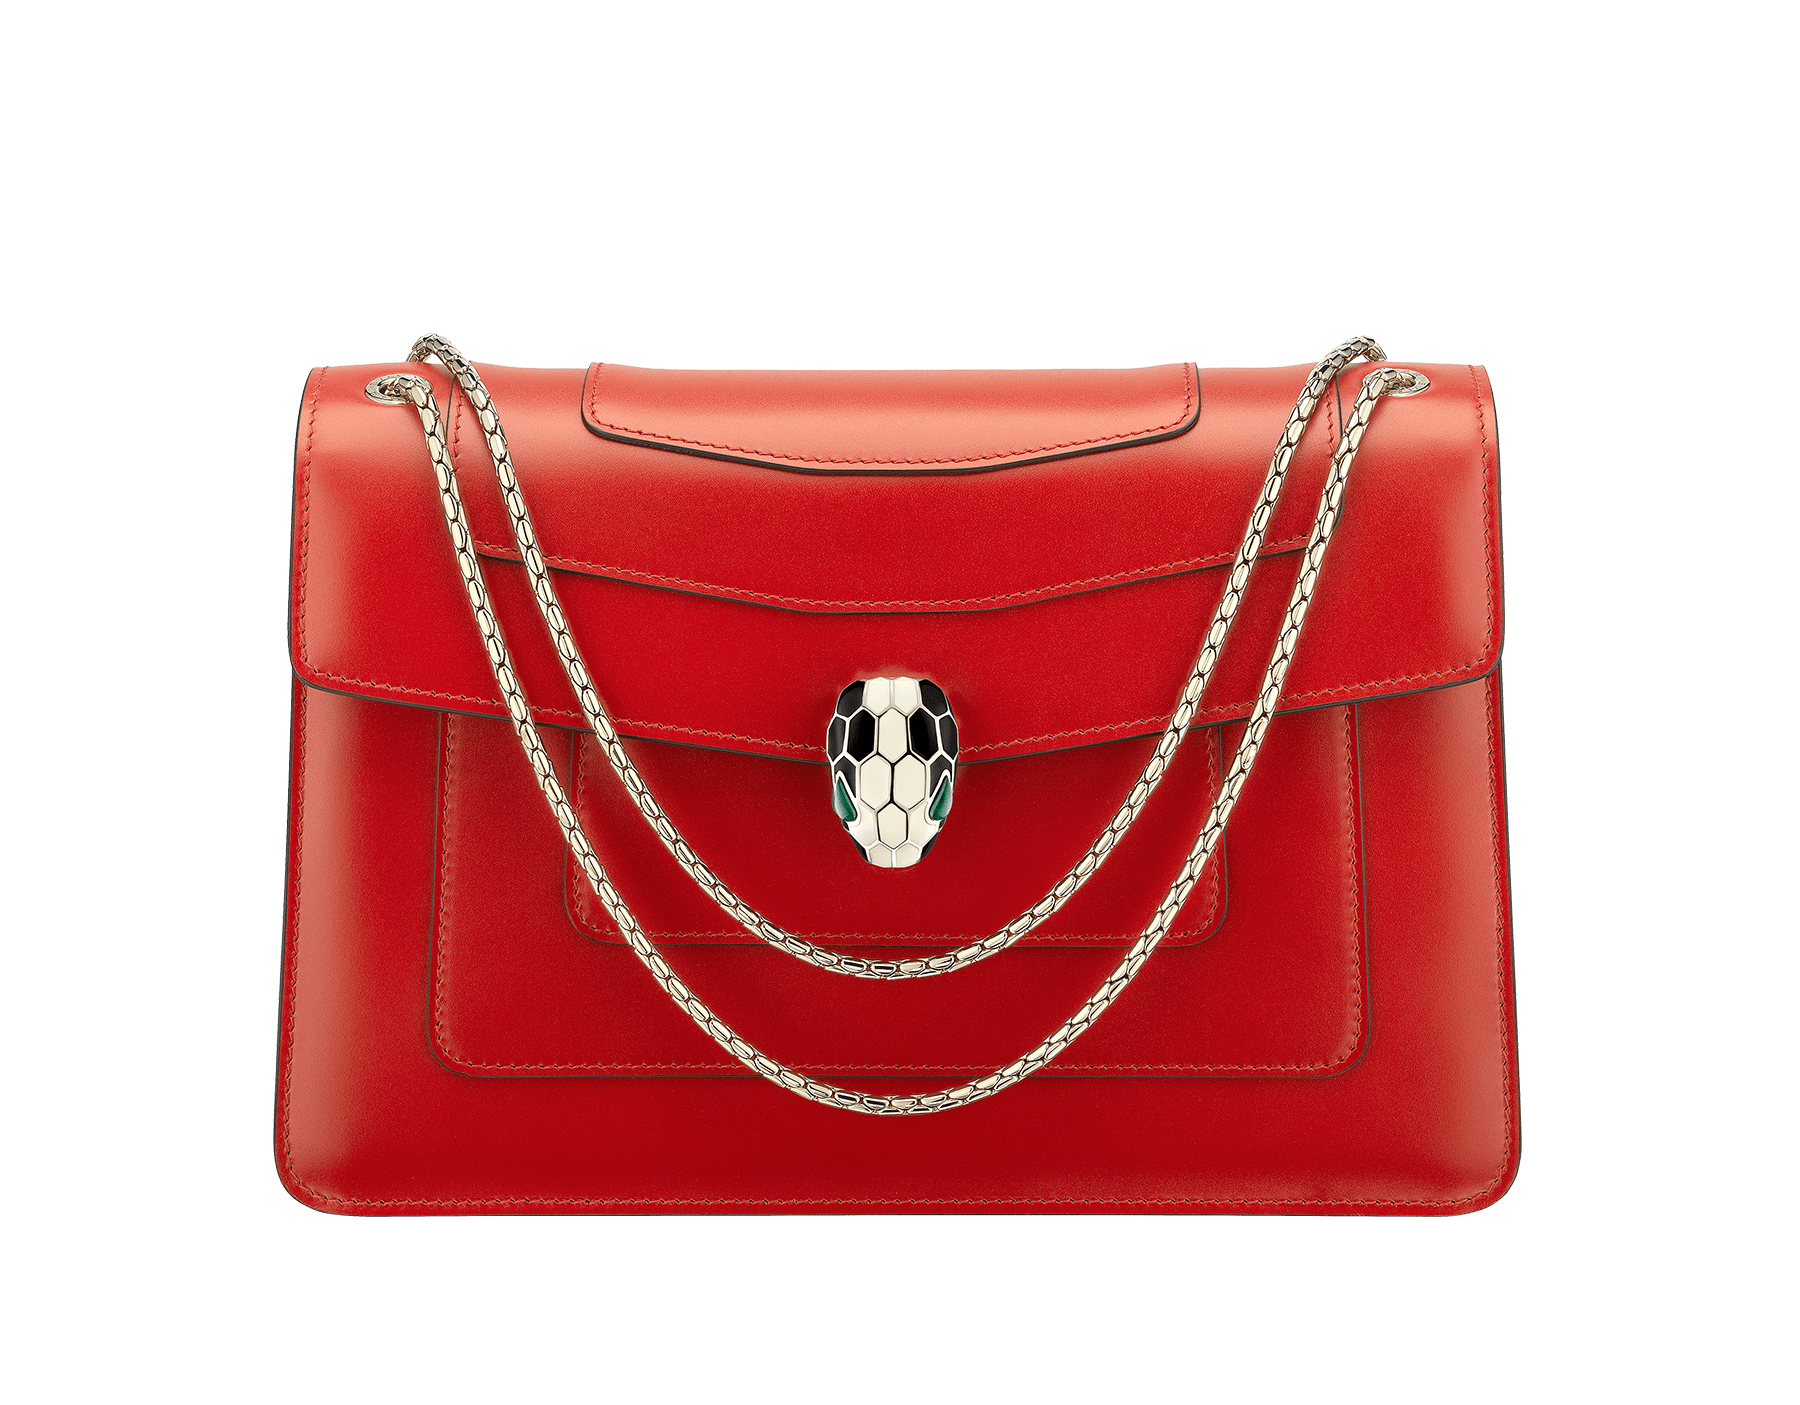 """Serpenti Forever "" shoulder bag in carmine jasper calf leather. Iconic snakehead closure in light gold plated brass enriched with black and white enamel and green malachite eyes 287033 image 1"